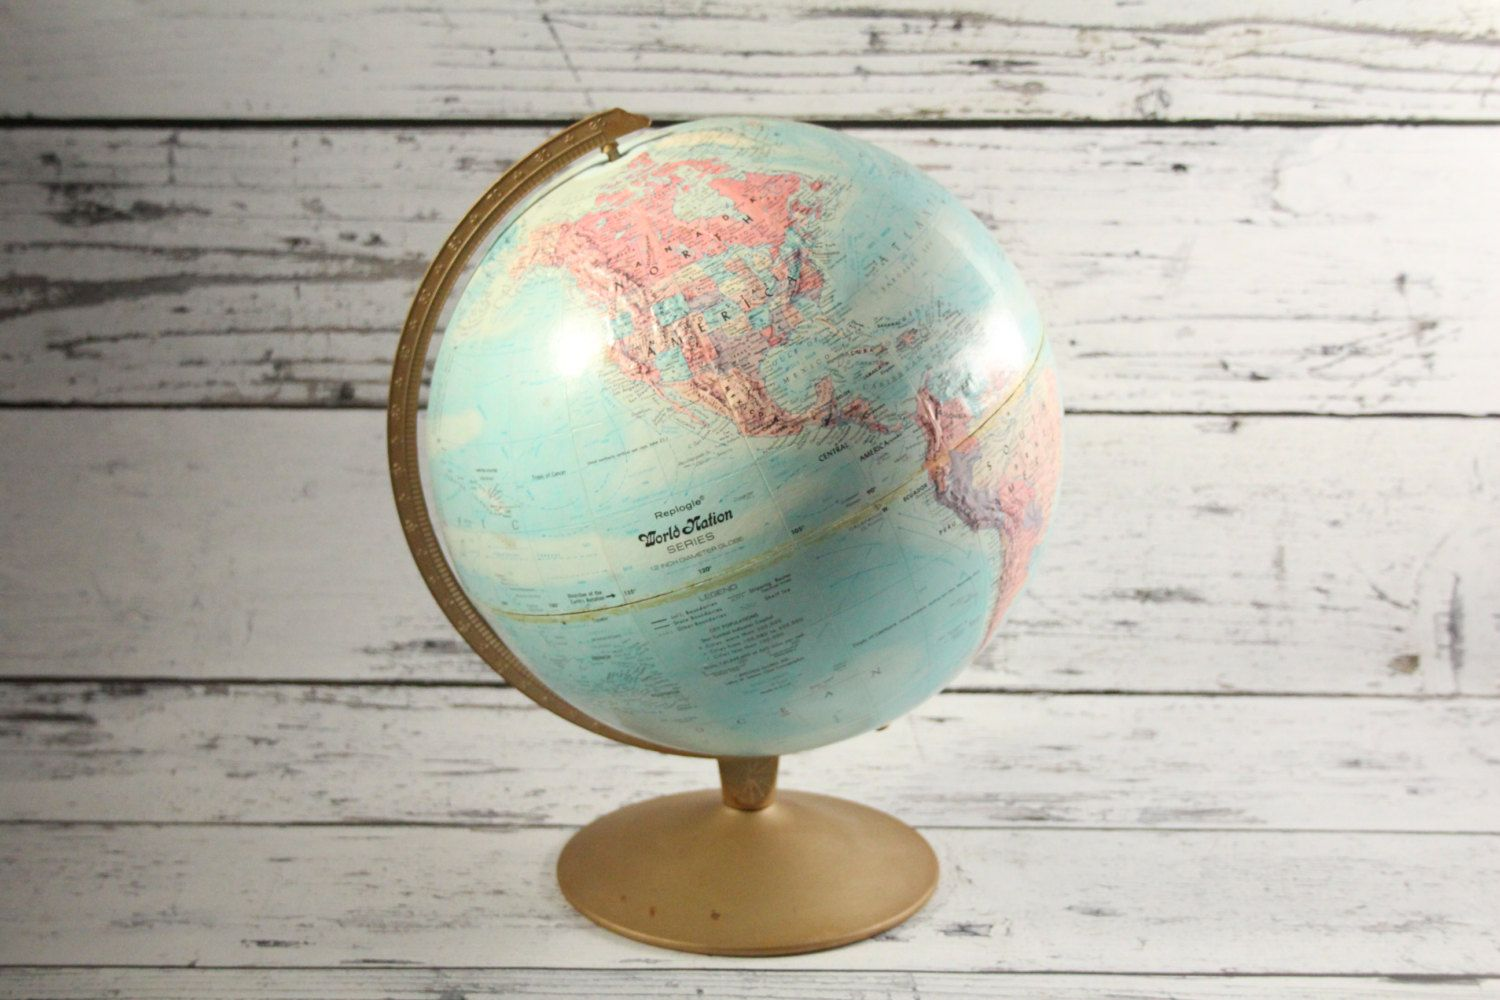 Vintage replogle globe world nation light blue antique colored brass globe world nation light blue antique colored brass metal base earth spinning 12 inch diameter world map topographical by brooklynbornfinds on etsy gumiabroncs Image collections